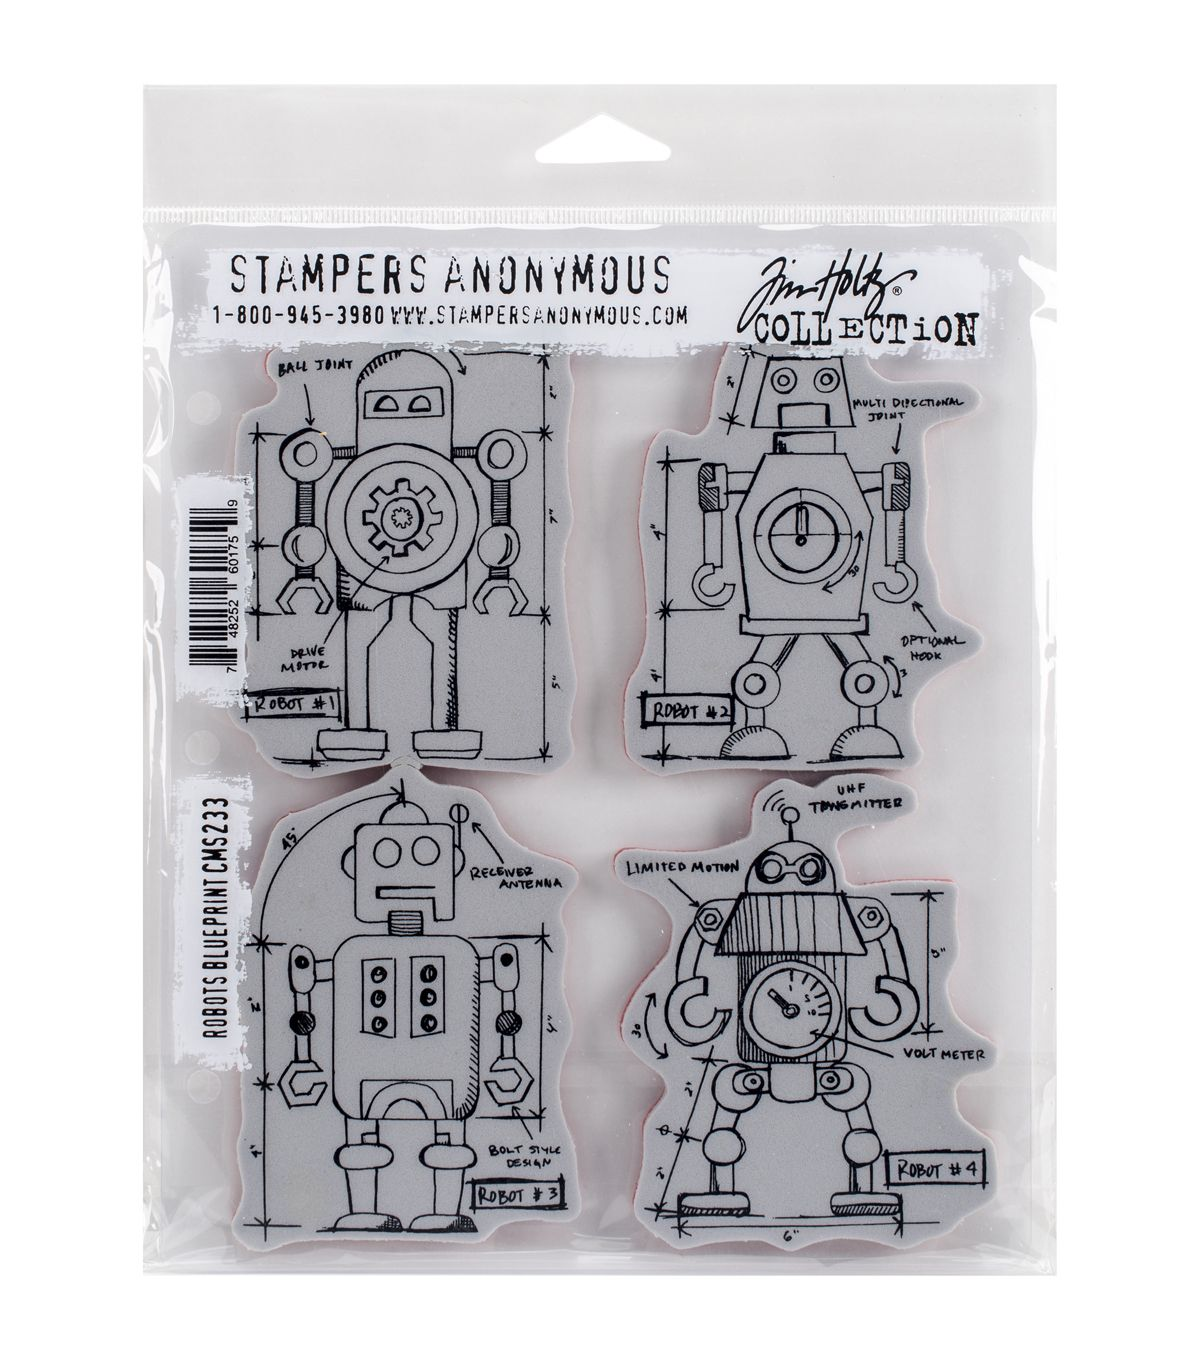 Stampers anonymous tim holtz robots blueprint cling rubber stamp stampers anonymous tim holtz robots blueprint cling rubber stamp set paper crafting stamping s malvernweather Choice Image